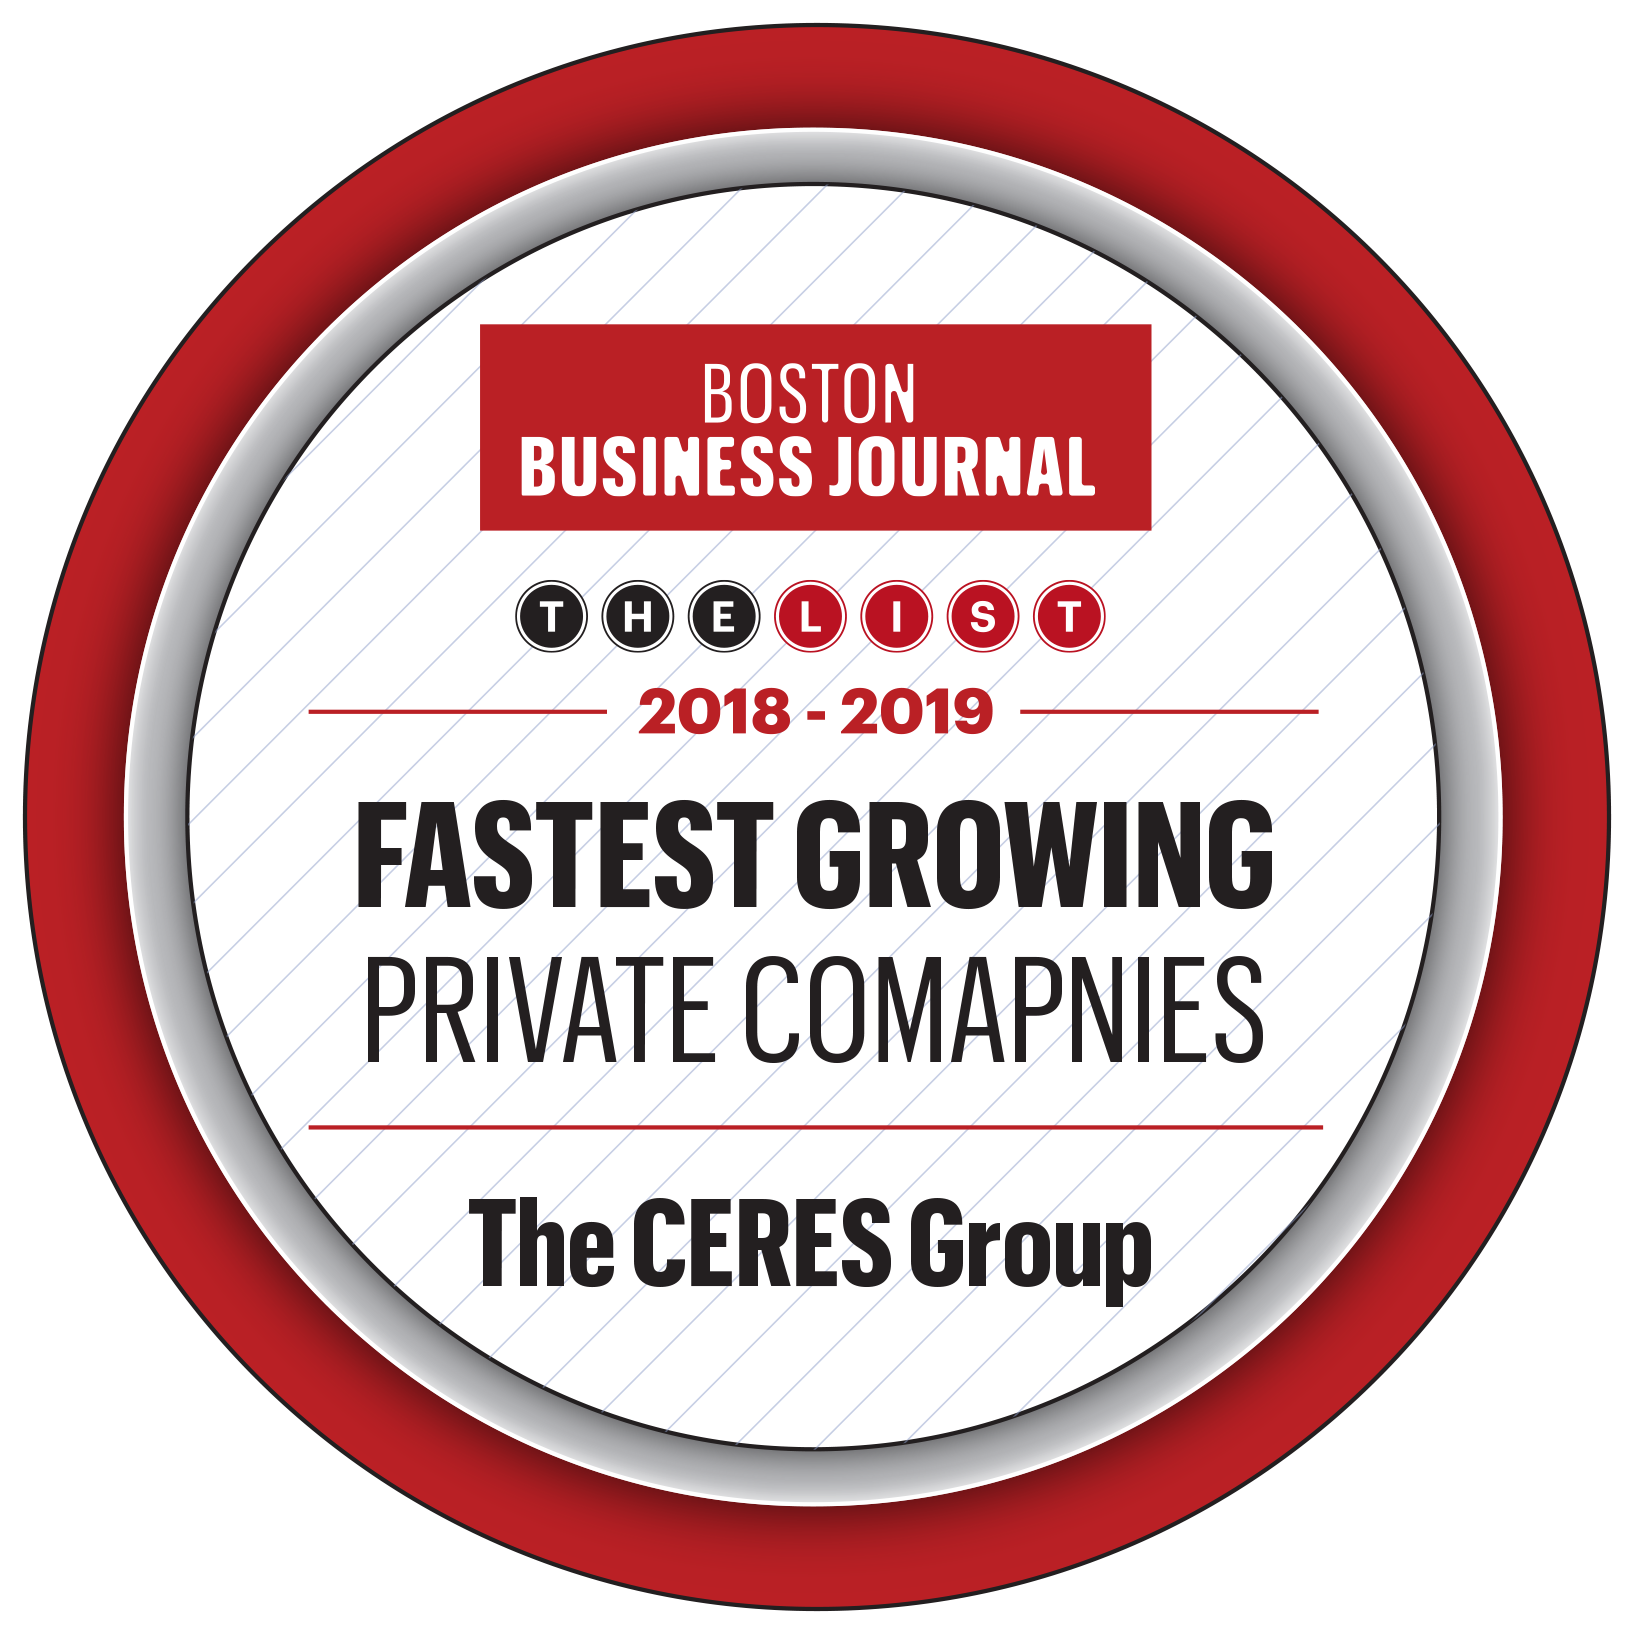 admin, Author at The Ceres Group